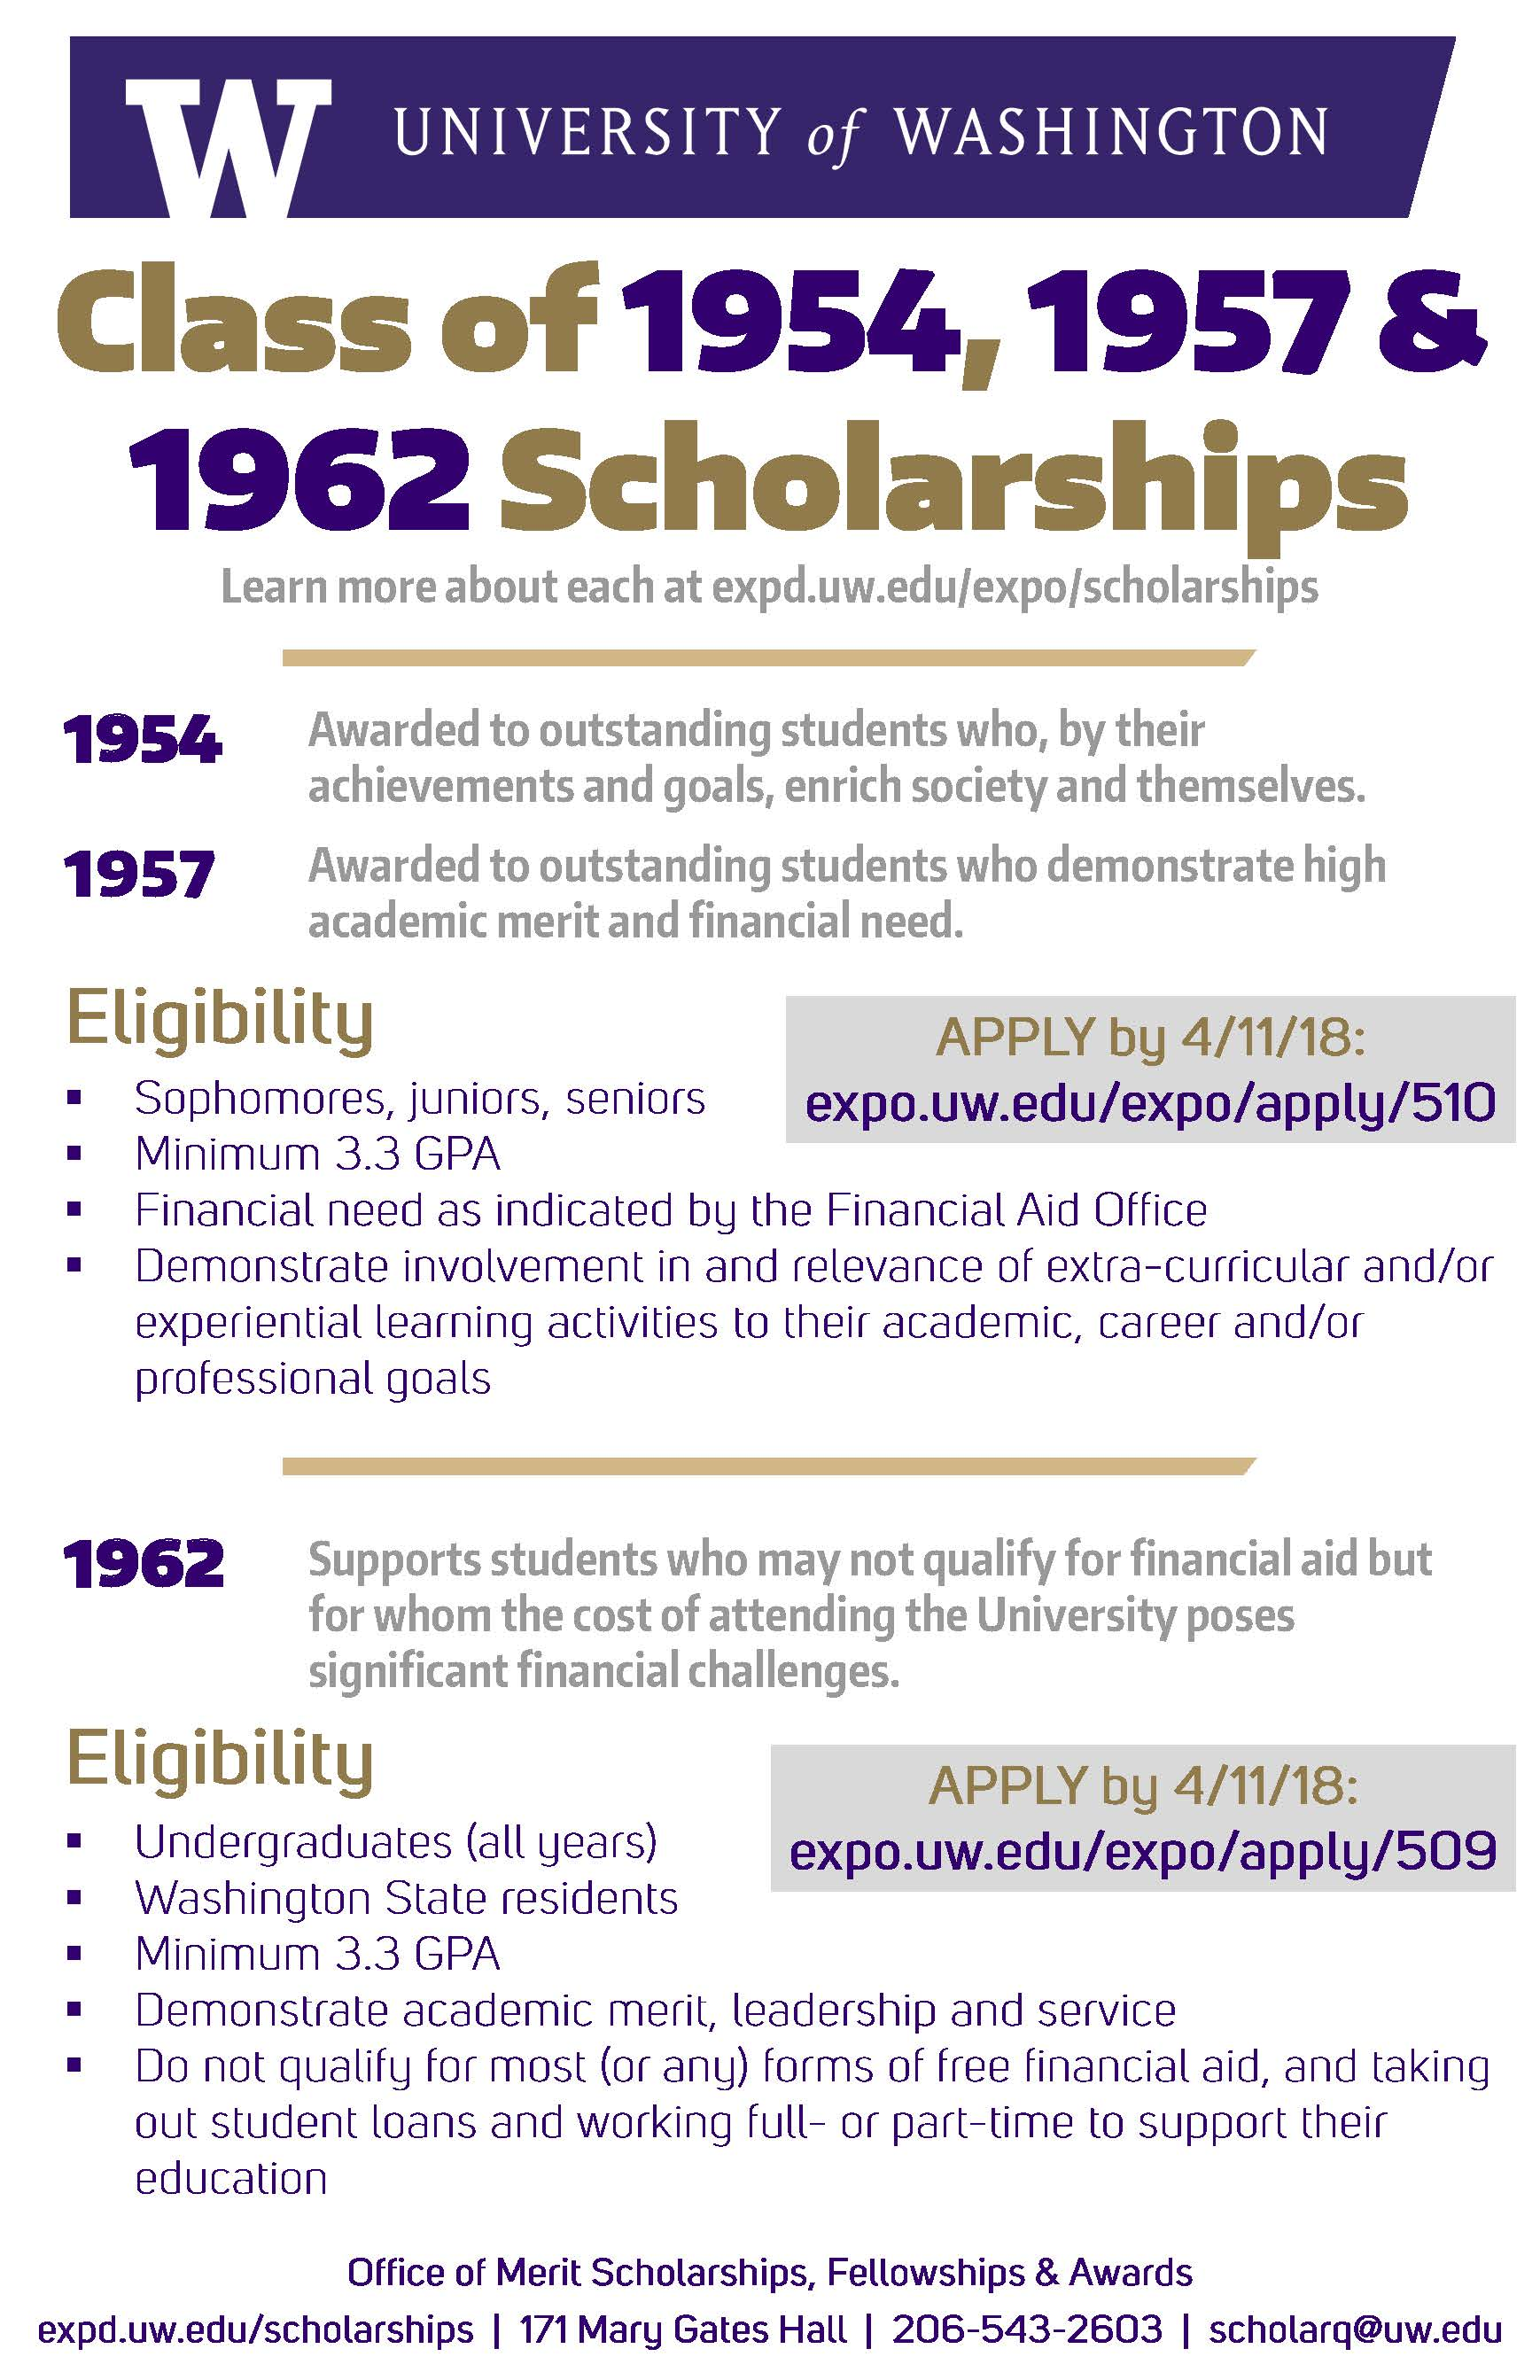 scholarships available from uw classes of 1954, 1957, 1962 and